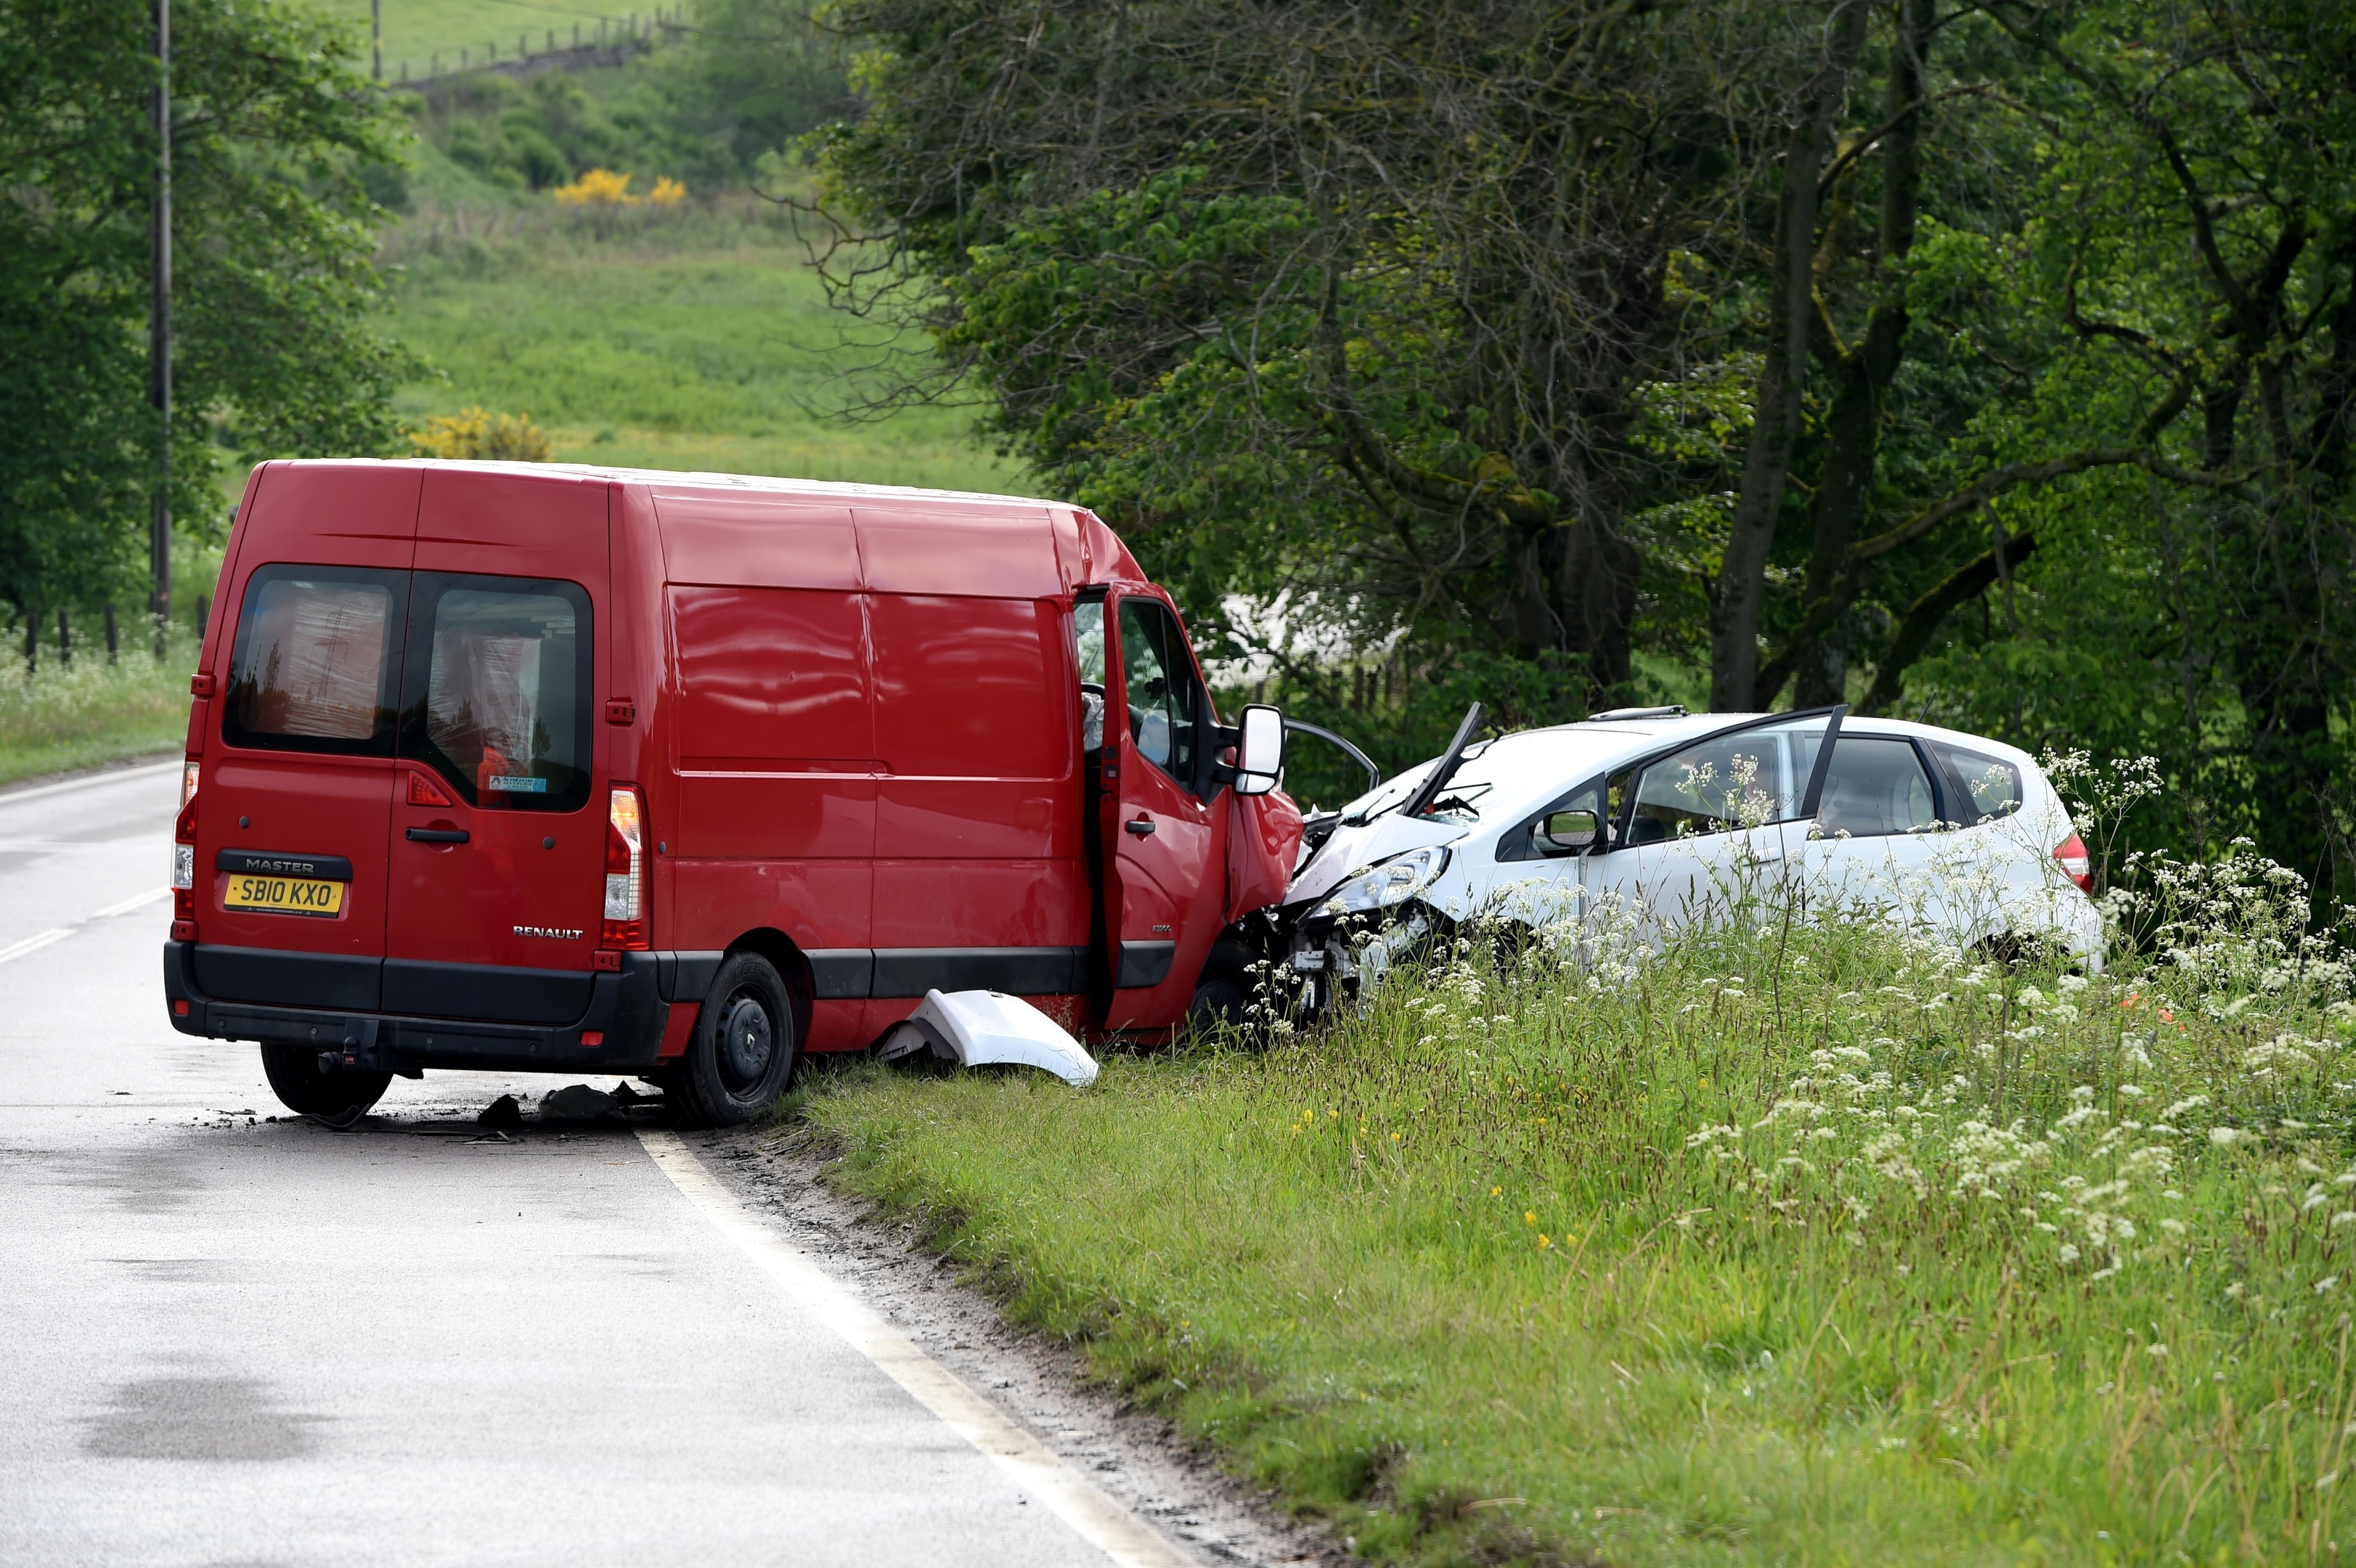 The scene of the collision on the A96